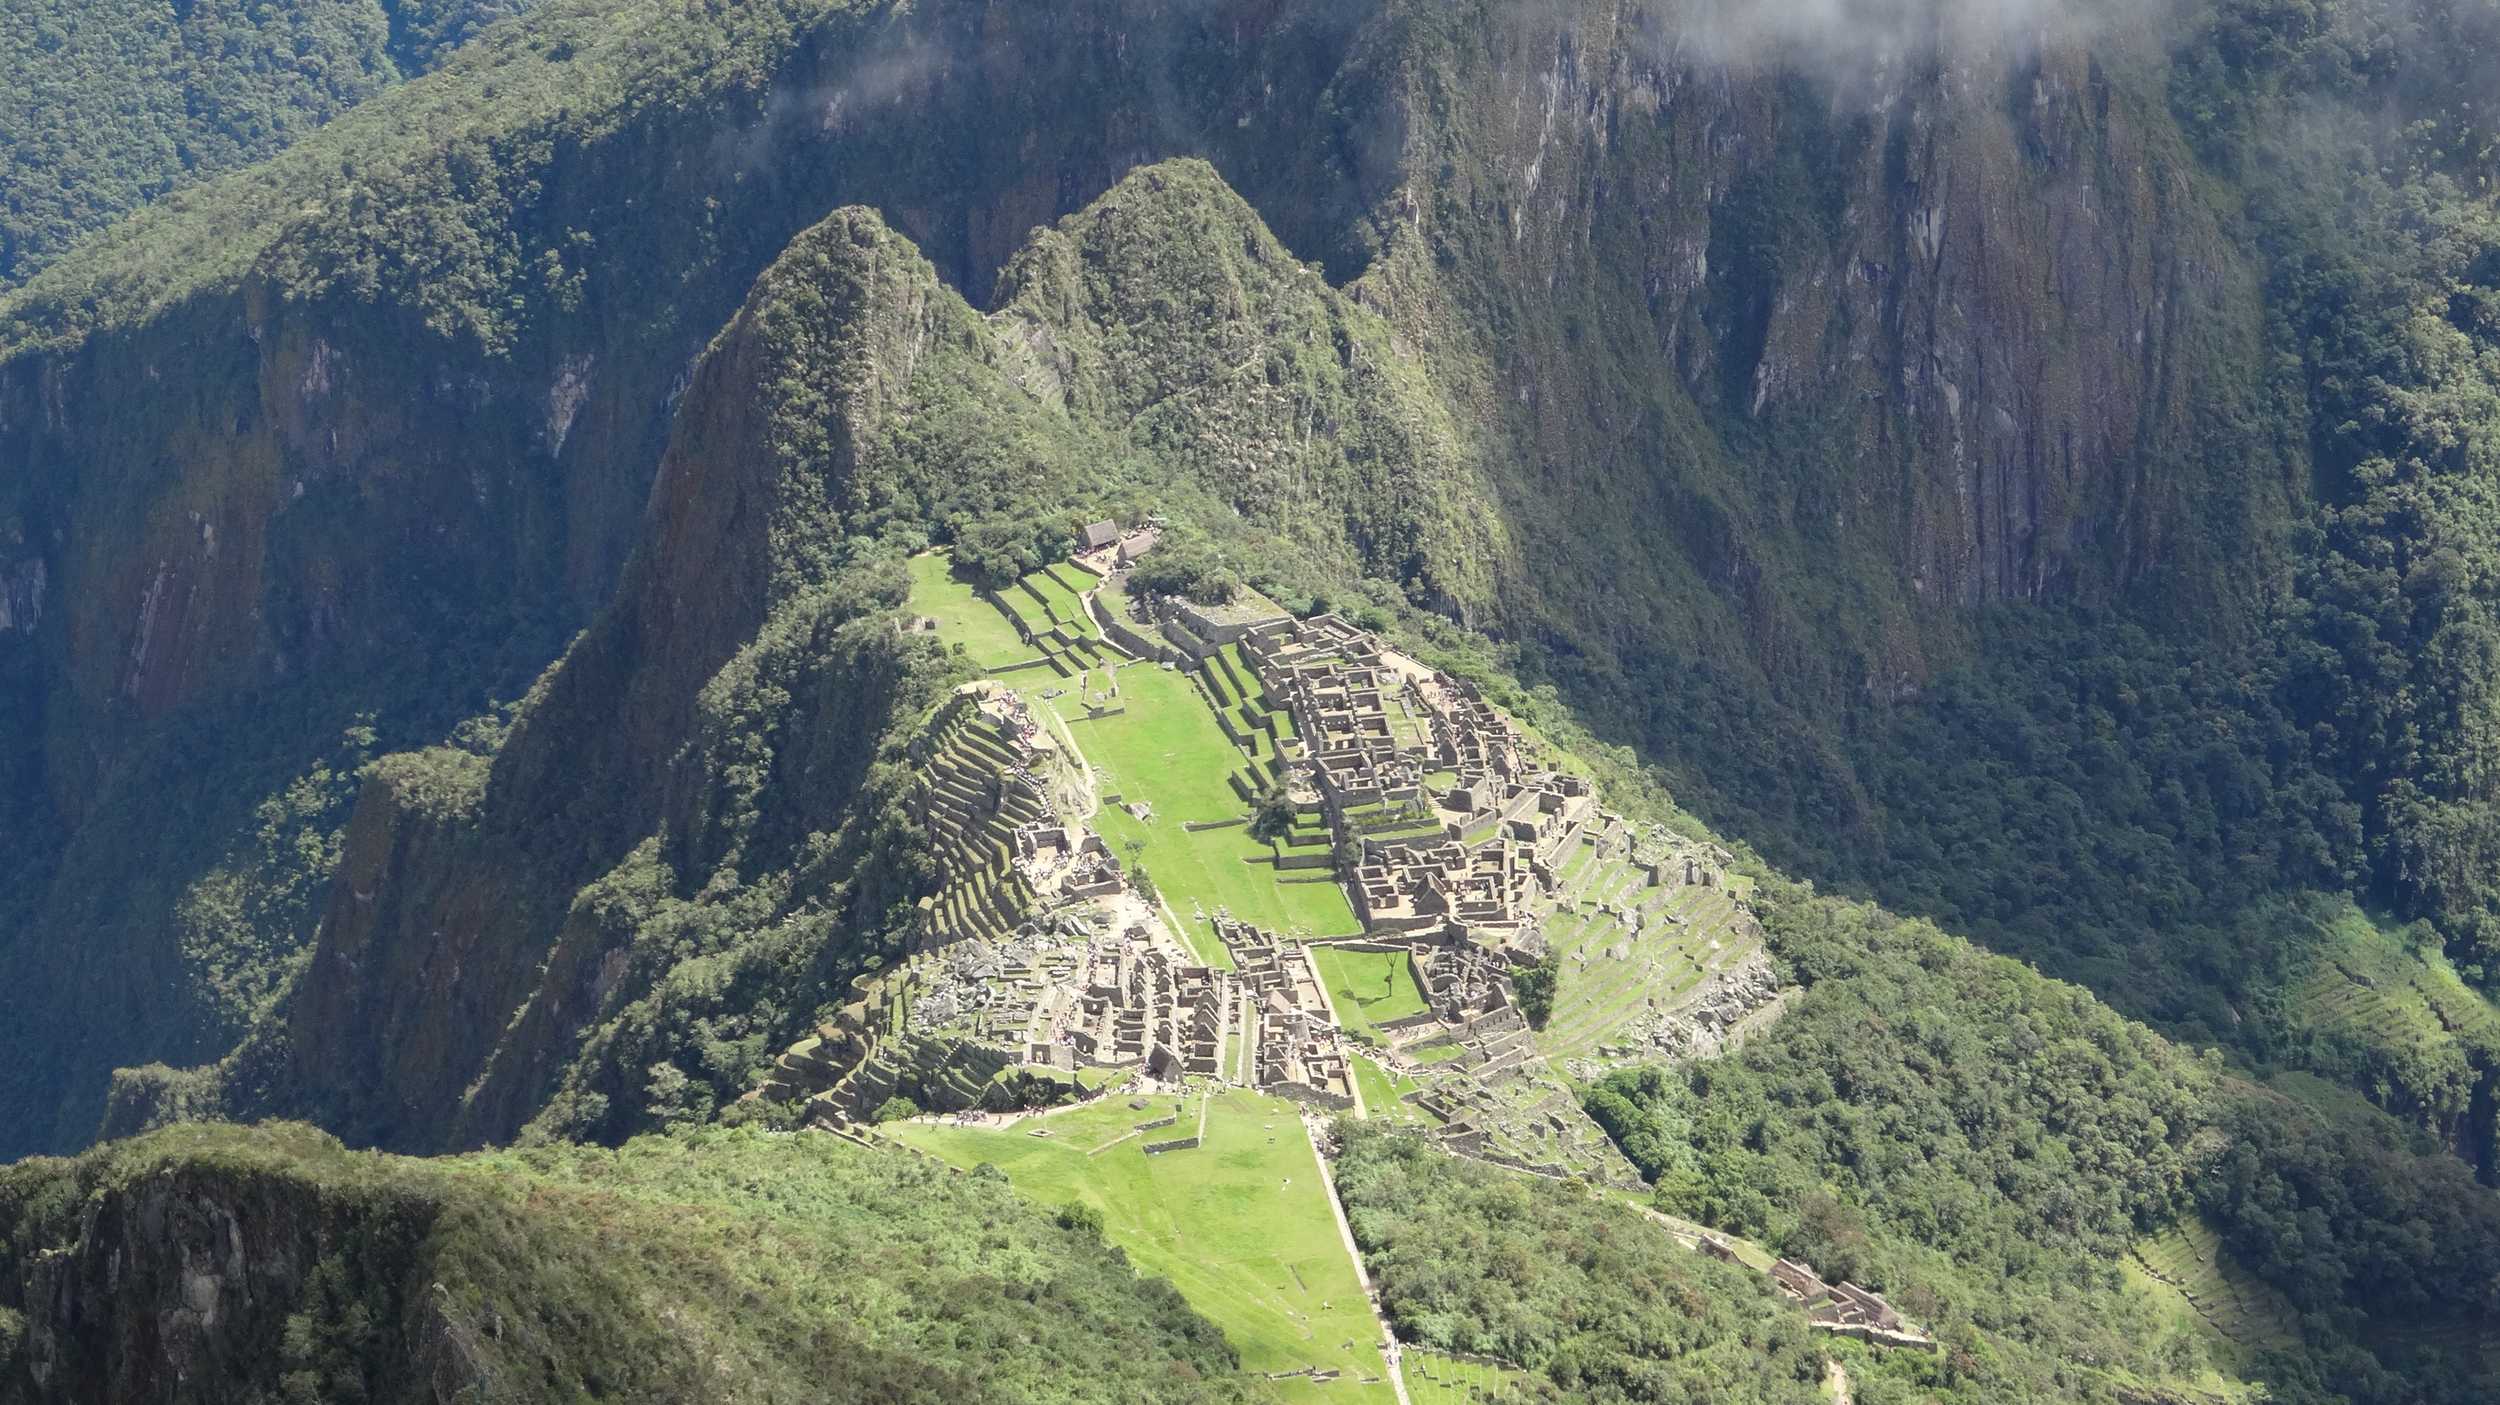 Machu Picchu! Also simply getting there from here - two flights, a train, a bus, and a hike - just made you realize even more how remote and awesome it is.